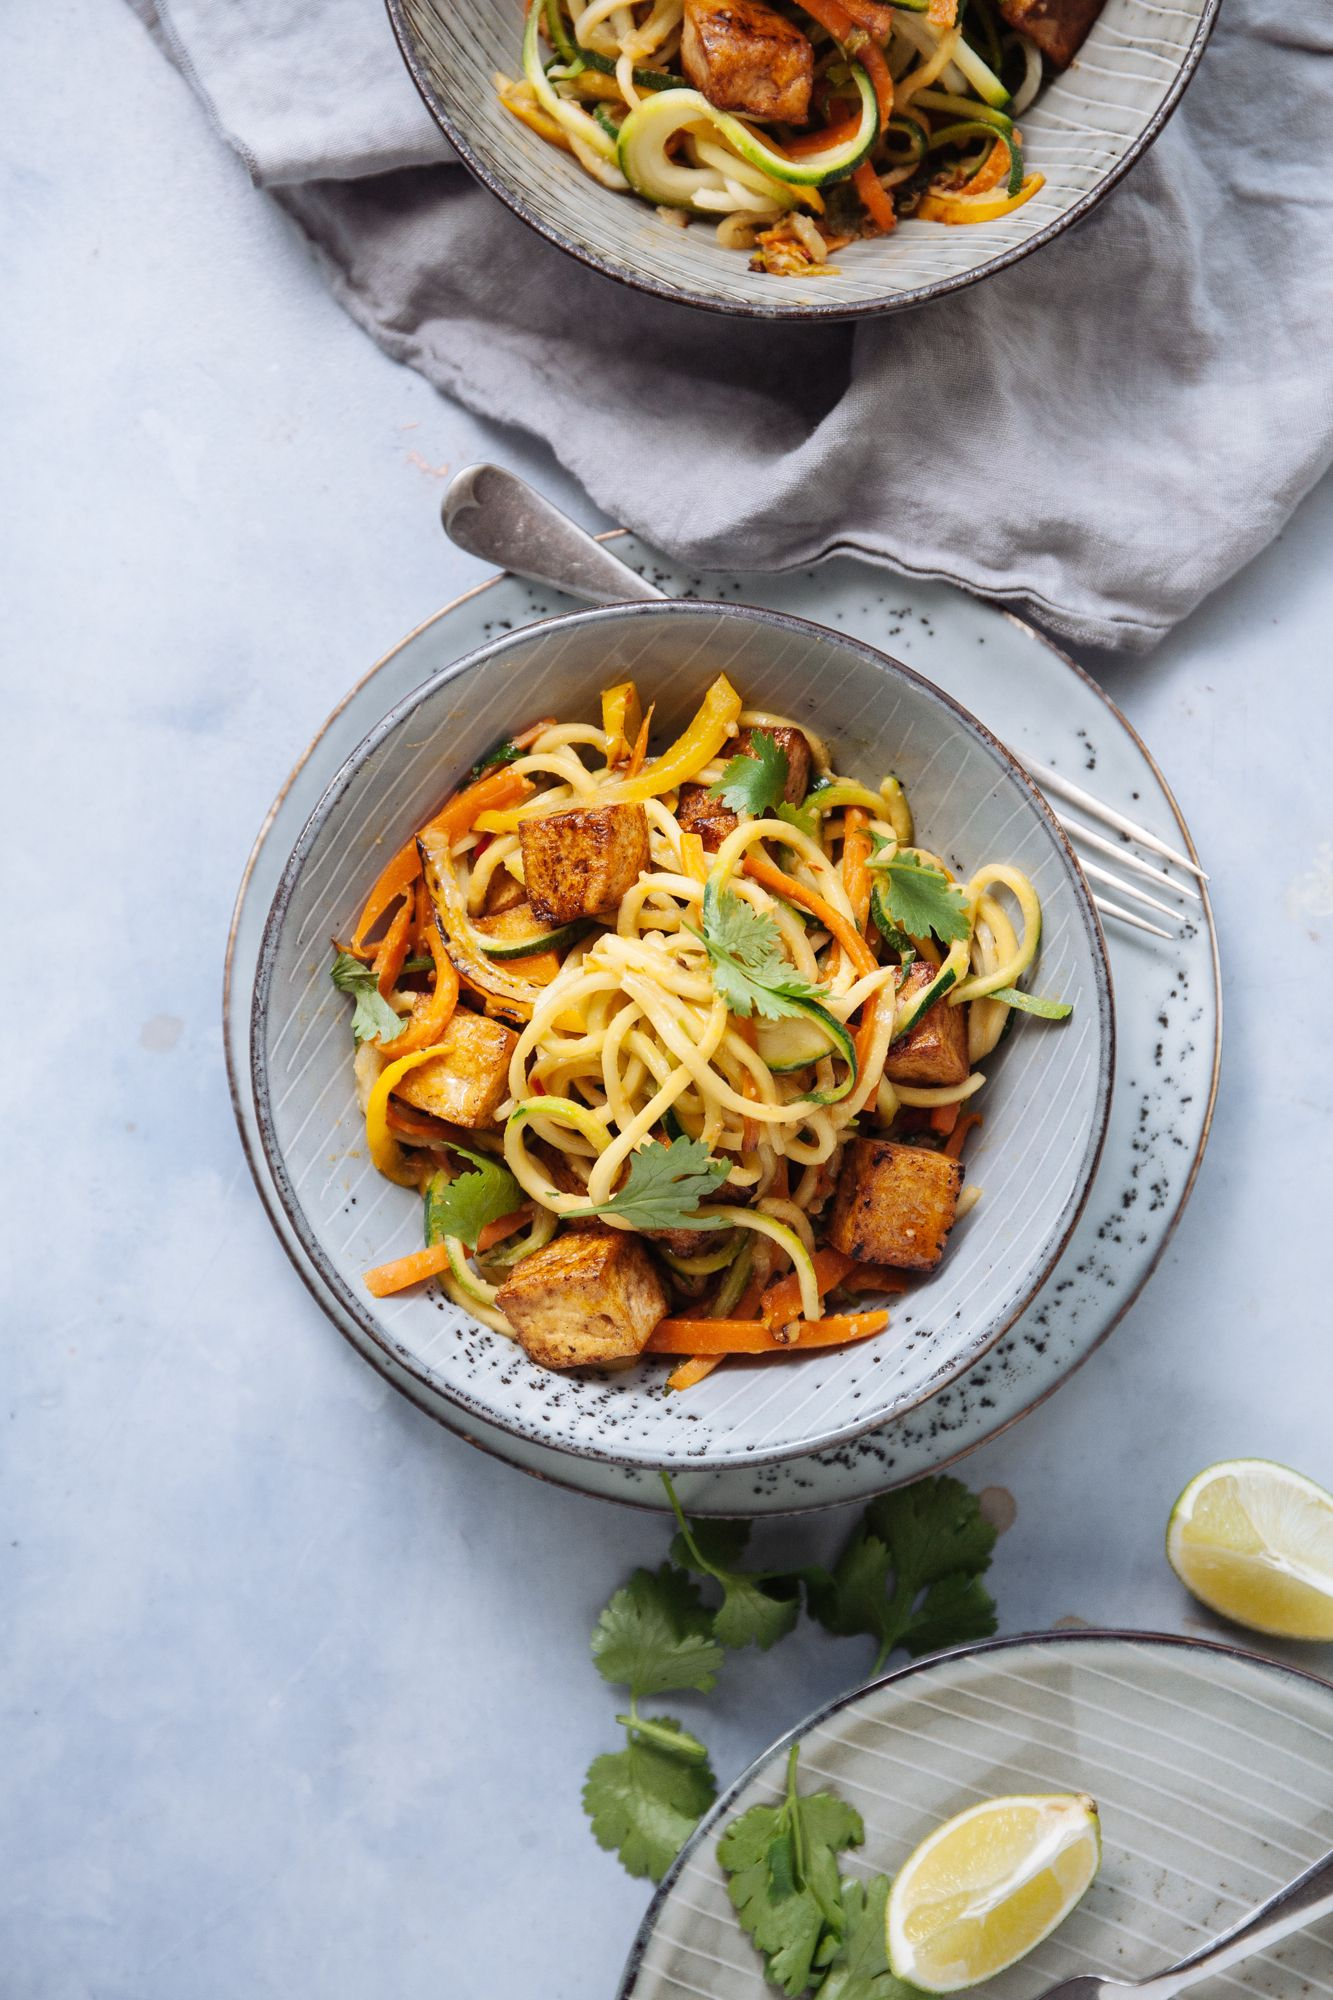 Healthy Tofu Pad Thai with courgetti noodles Vegan